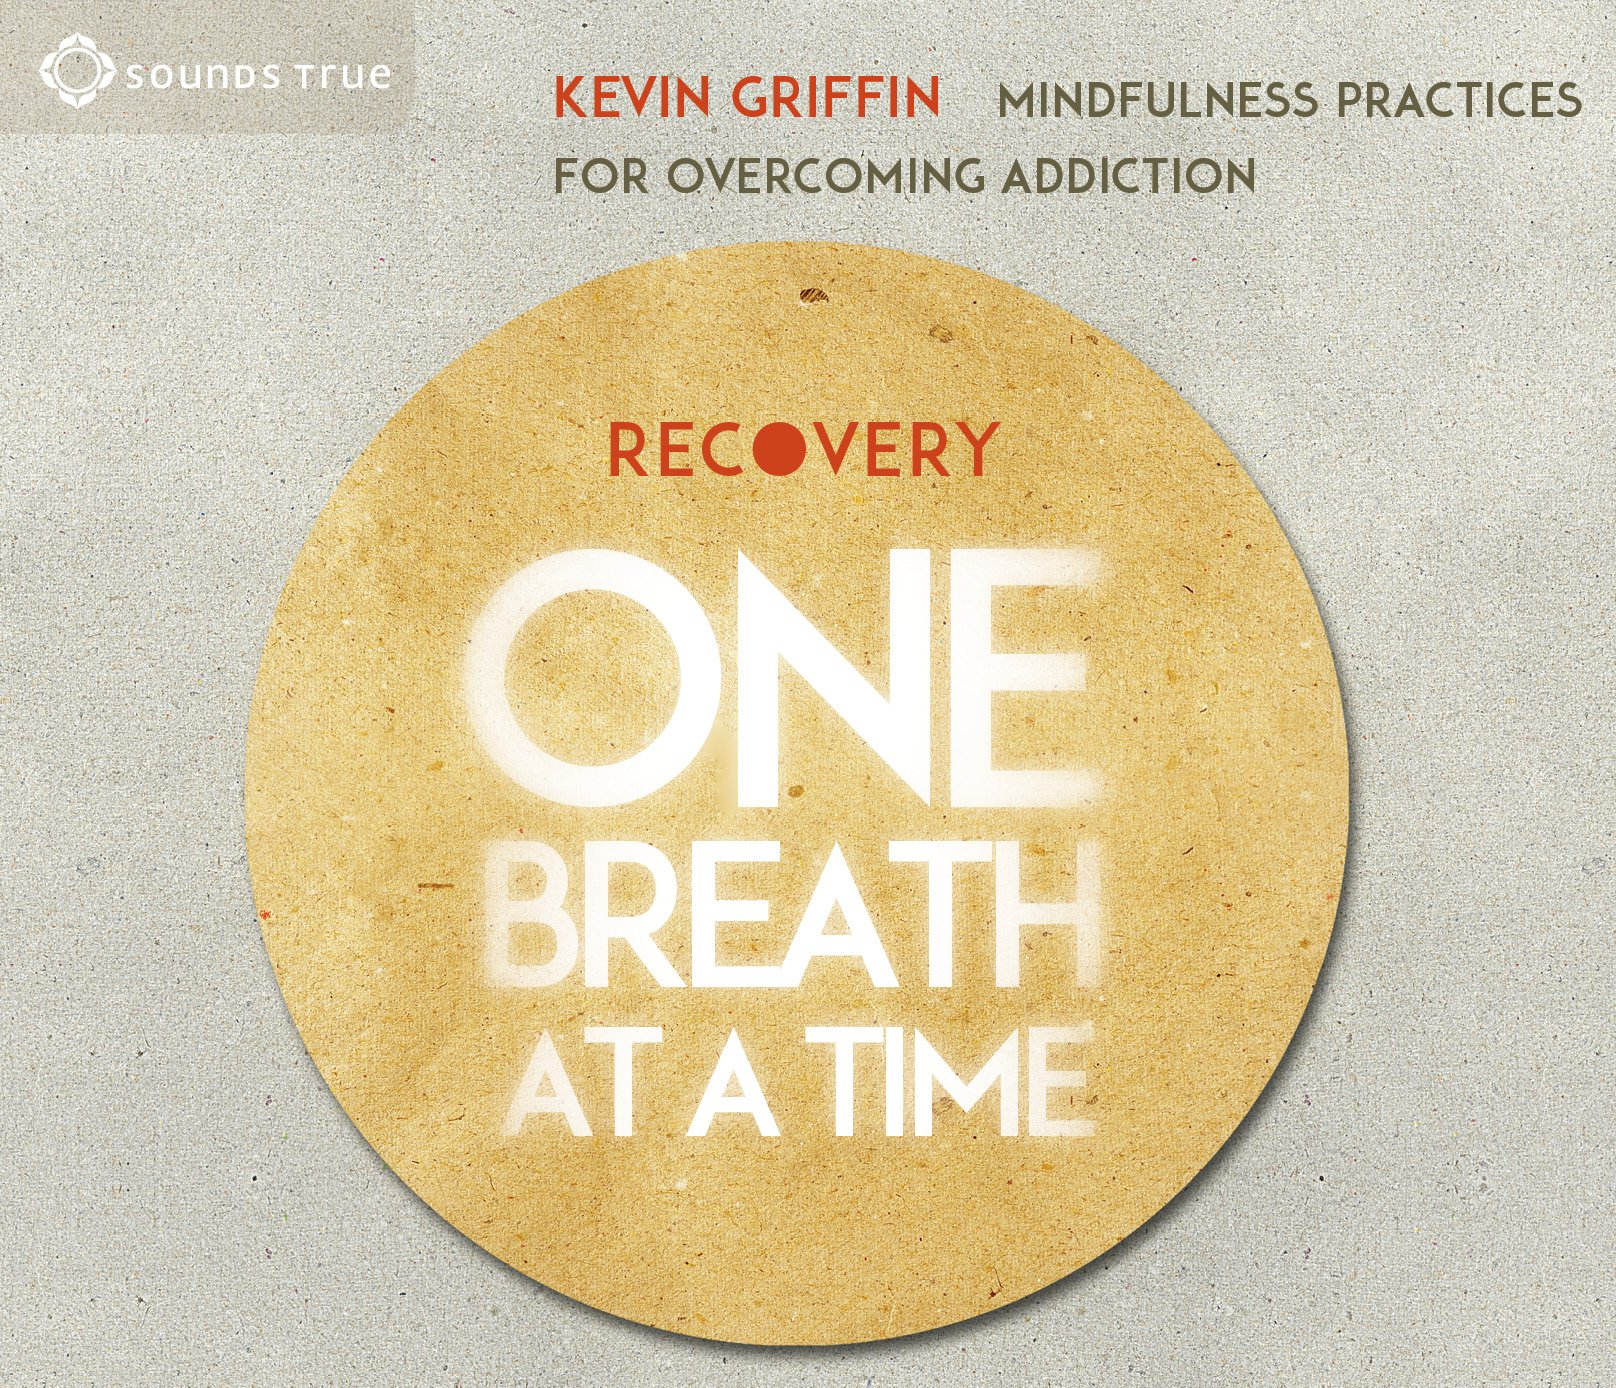 Recovery one breath at a time mindfulness practices for recovery one breath at a time mindfulness practices for overcoming addiction kevin griffin 9781622034468 amazon books fandeluxe Images